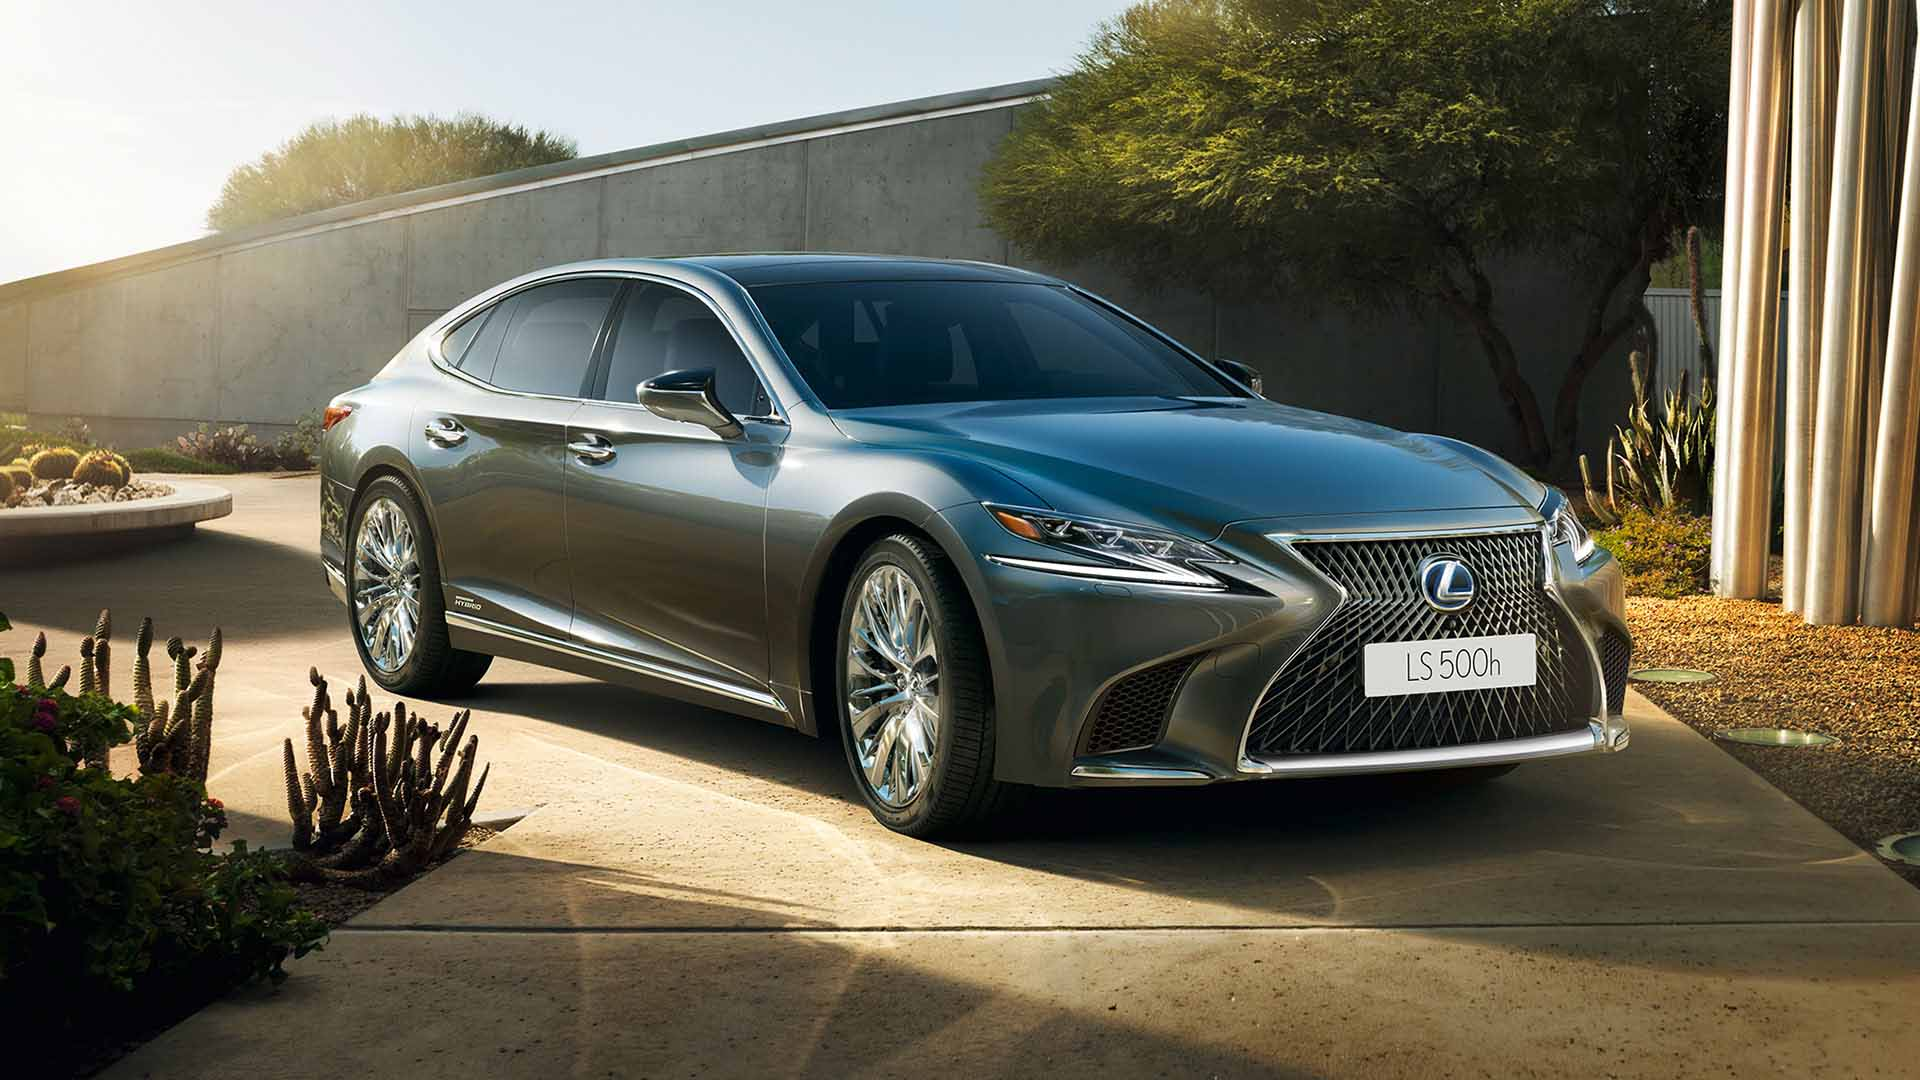 2017 lexus ls 500h next steps personalise